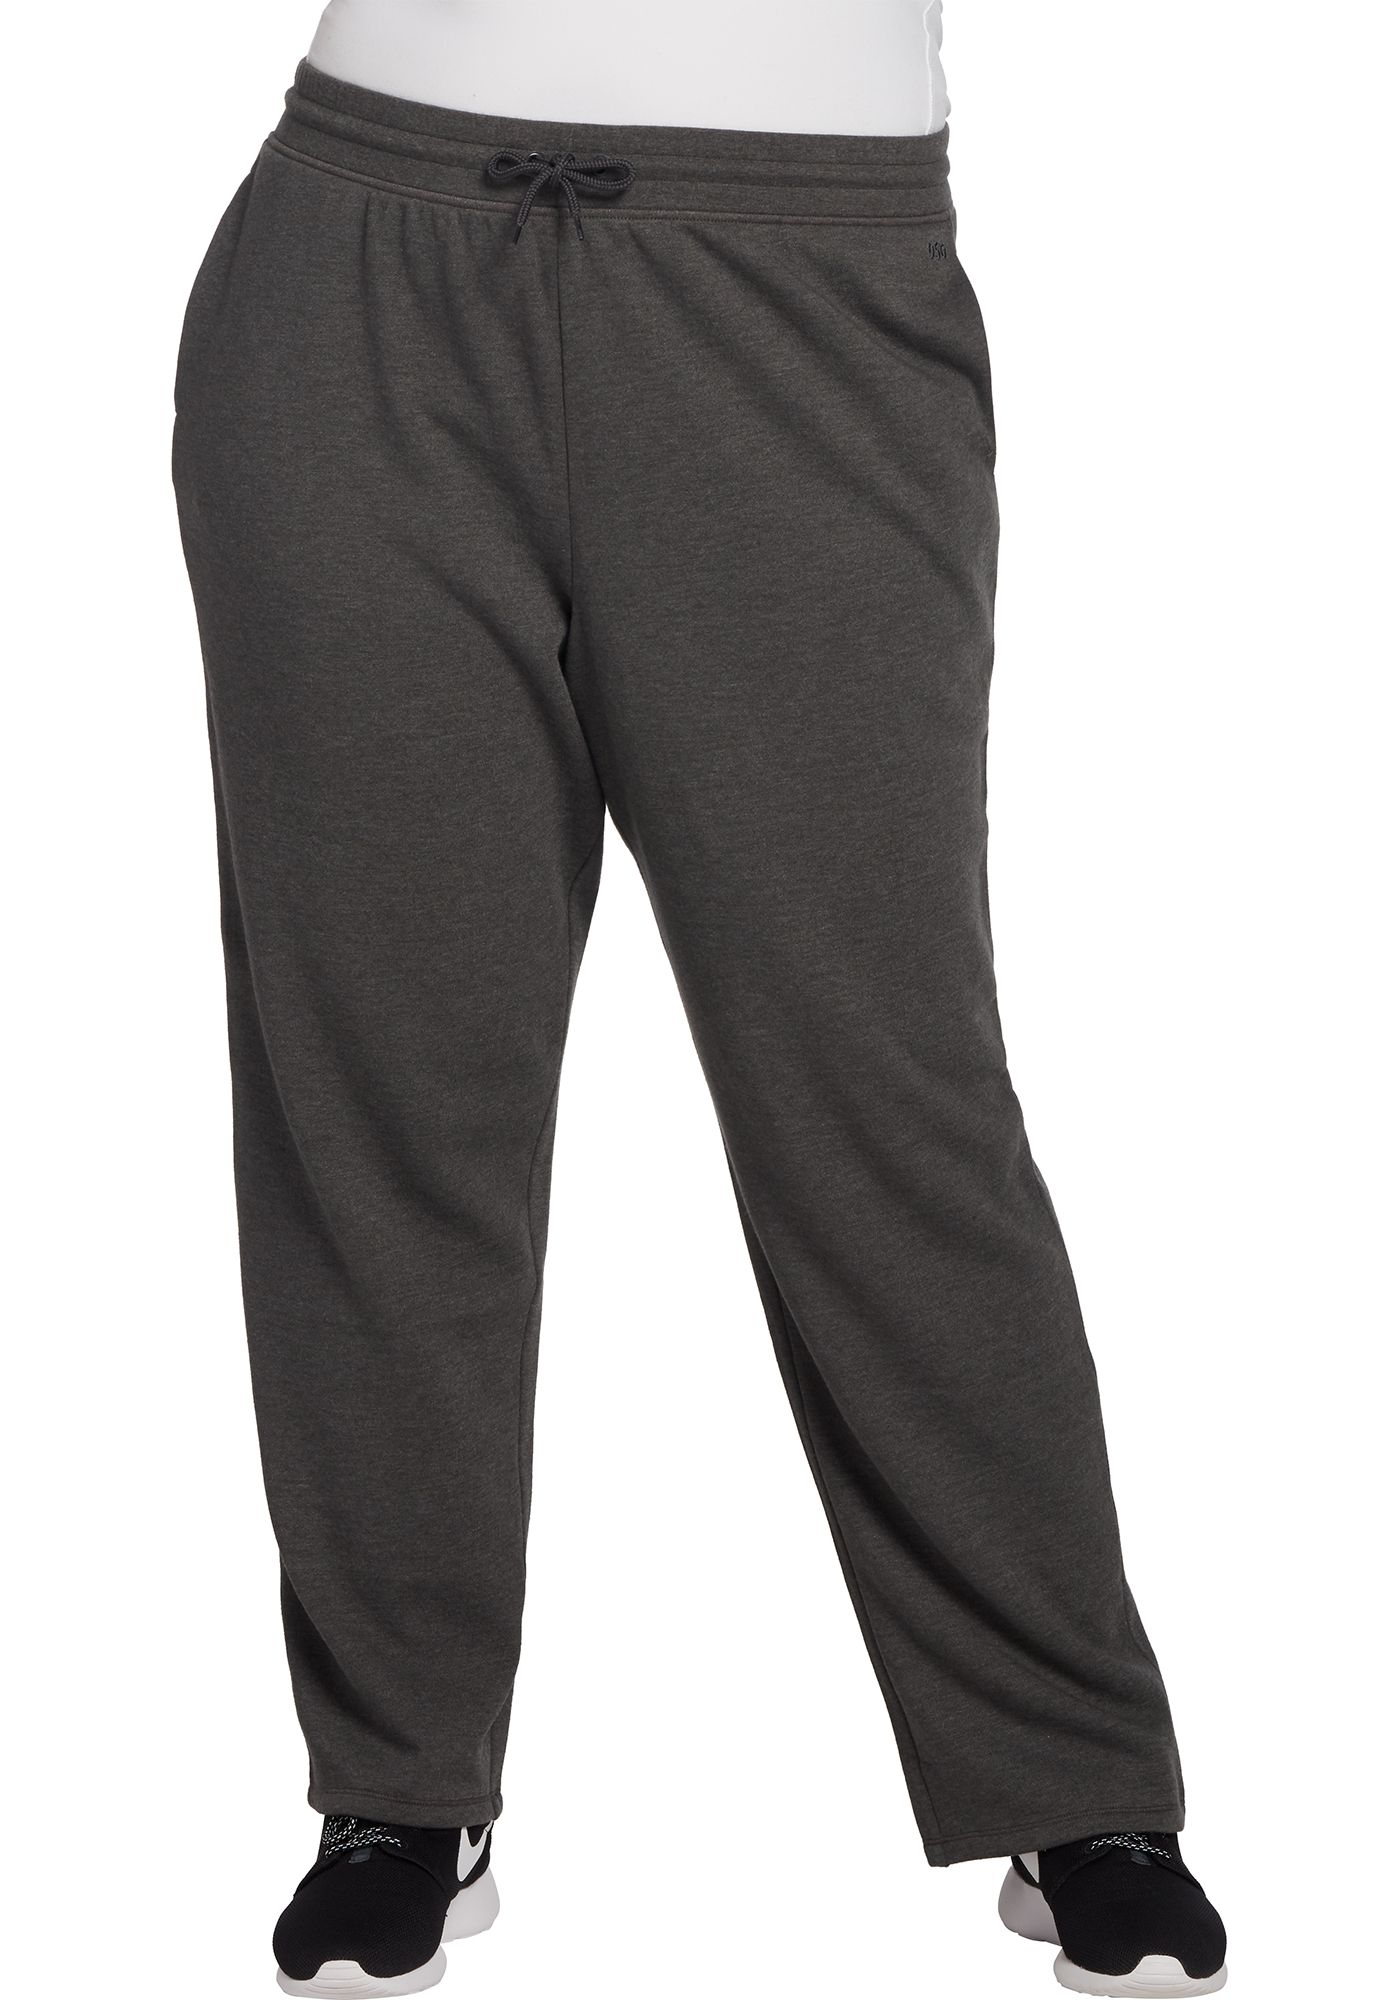 DSG Women's Plus Size Open Hem Fleece Pants